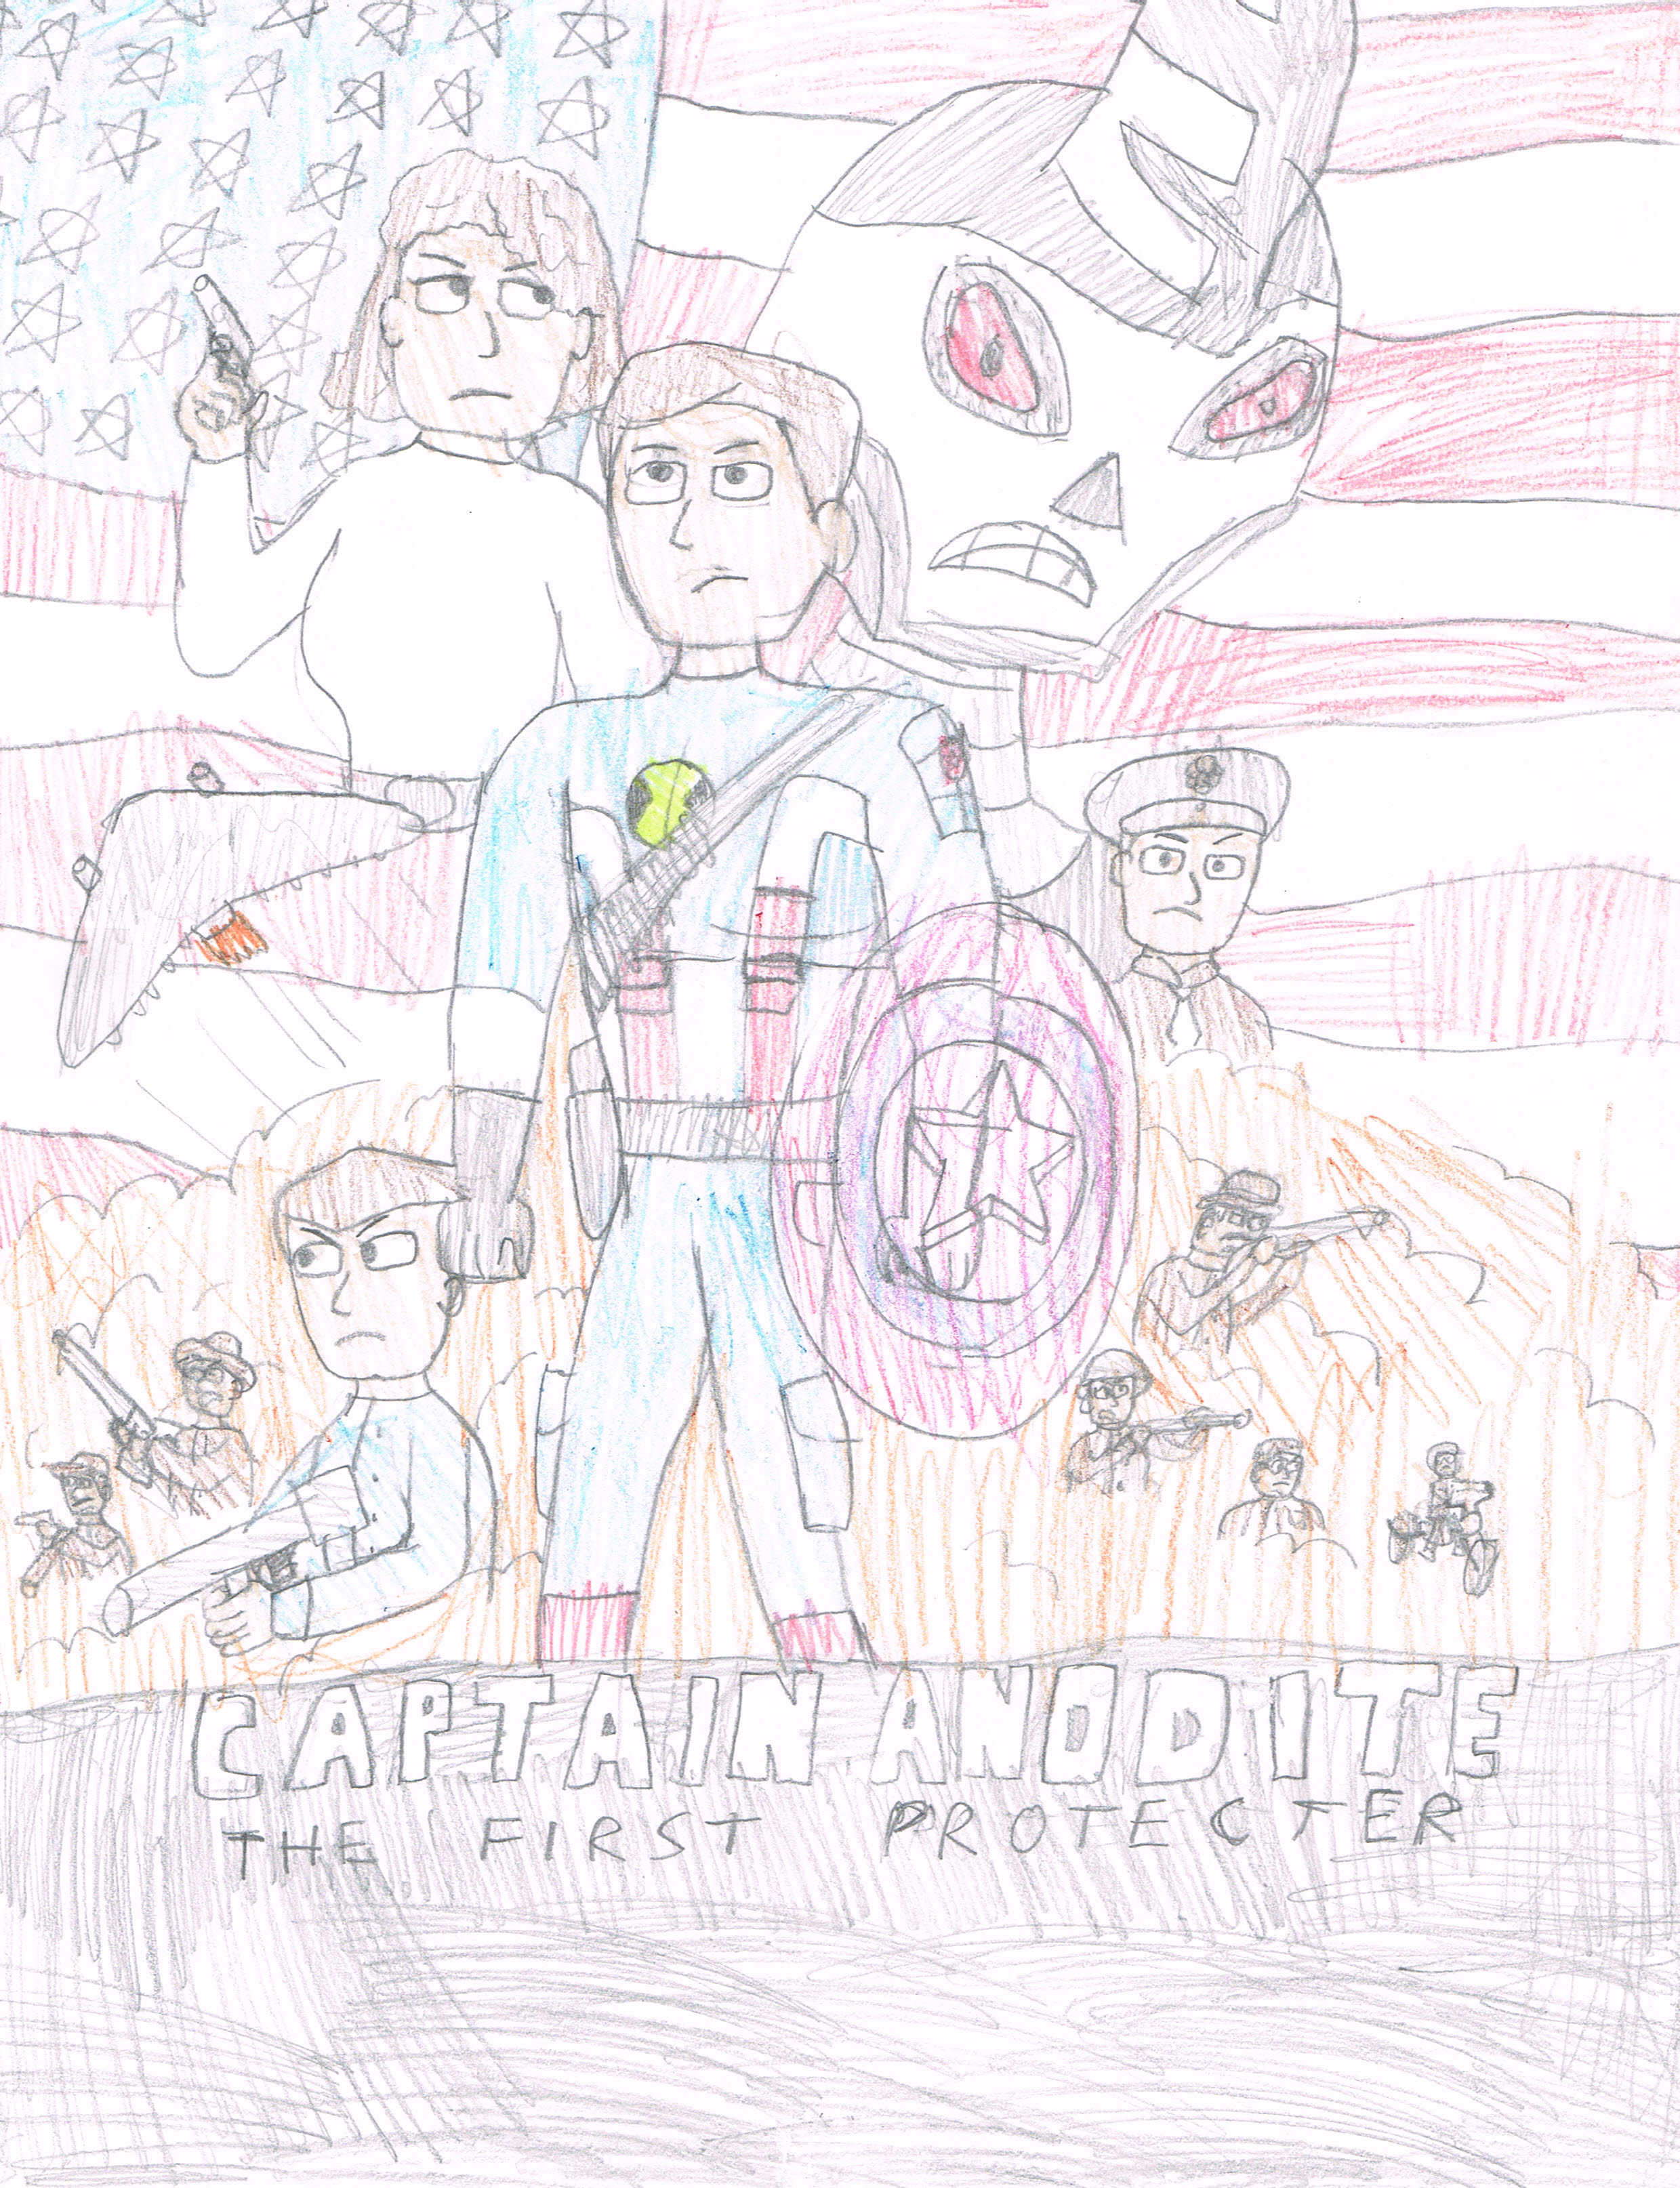 Captain Anodite: The First Protector